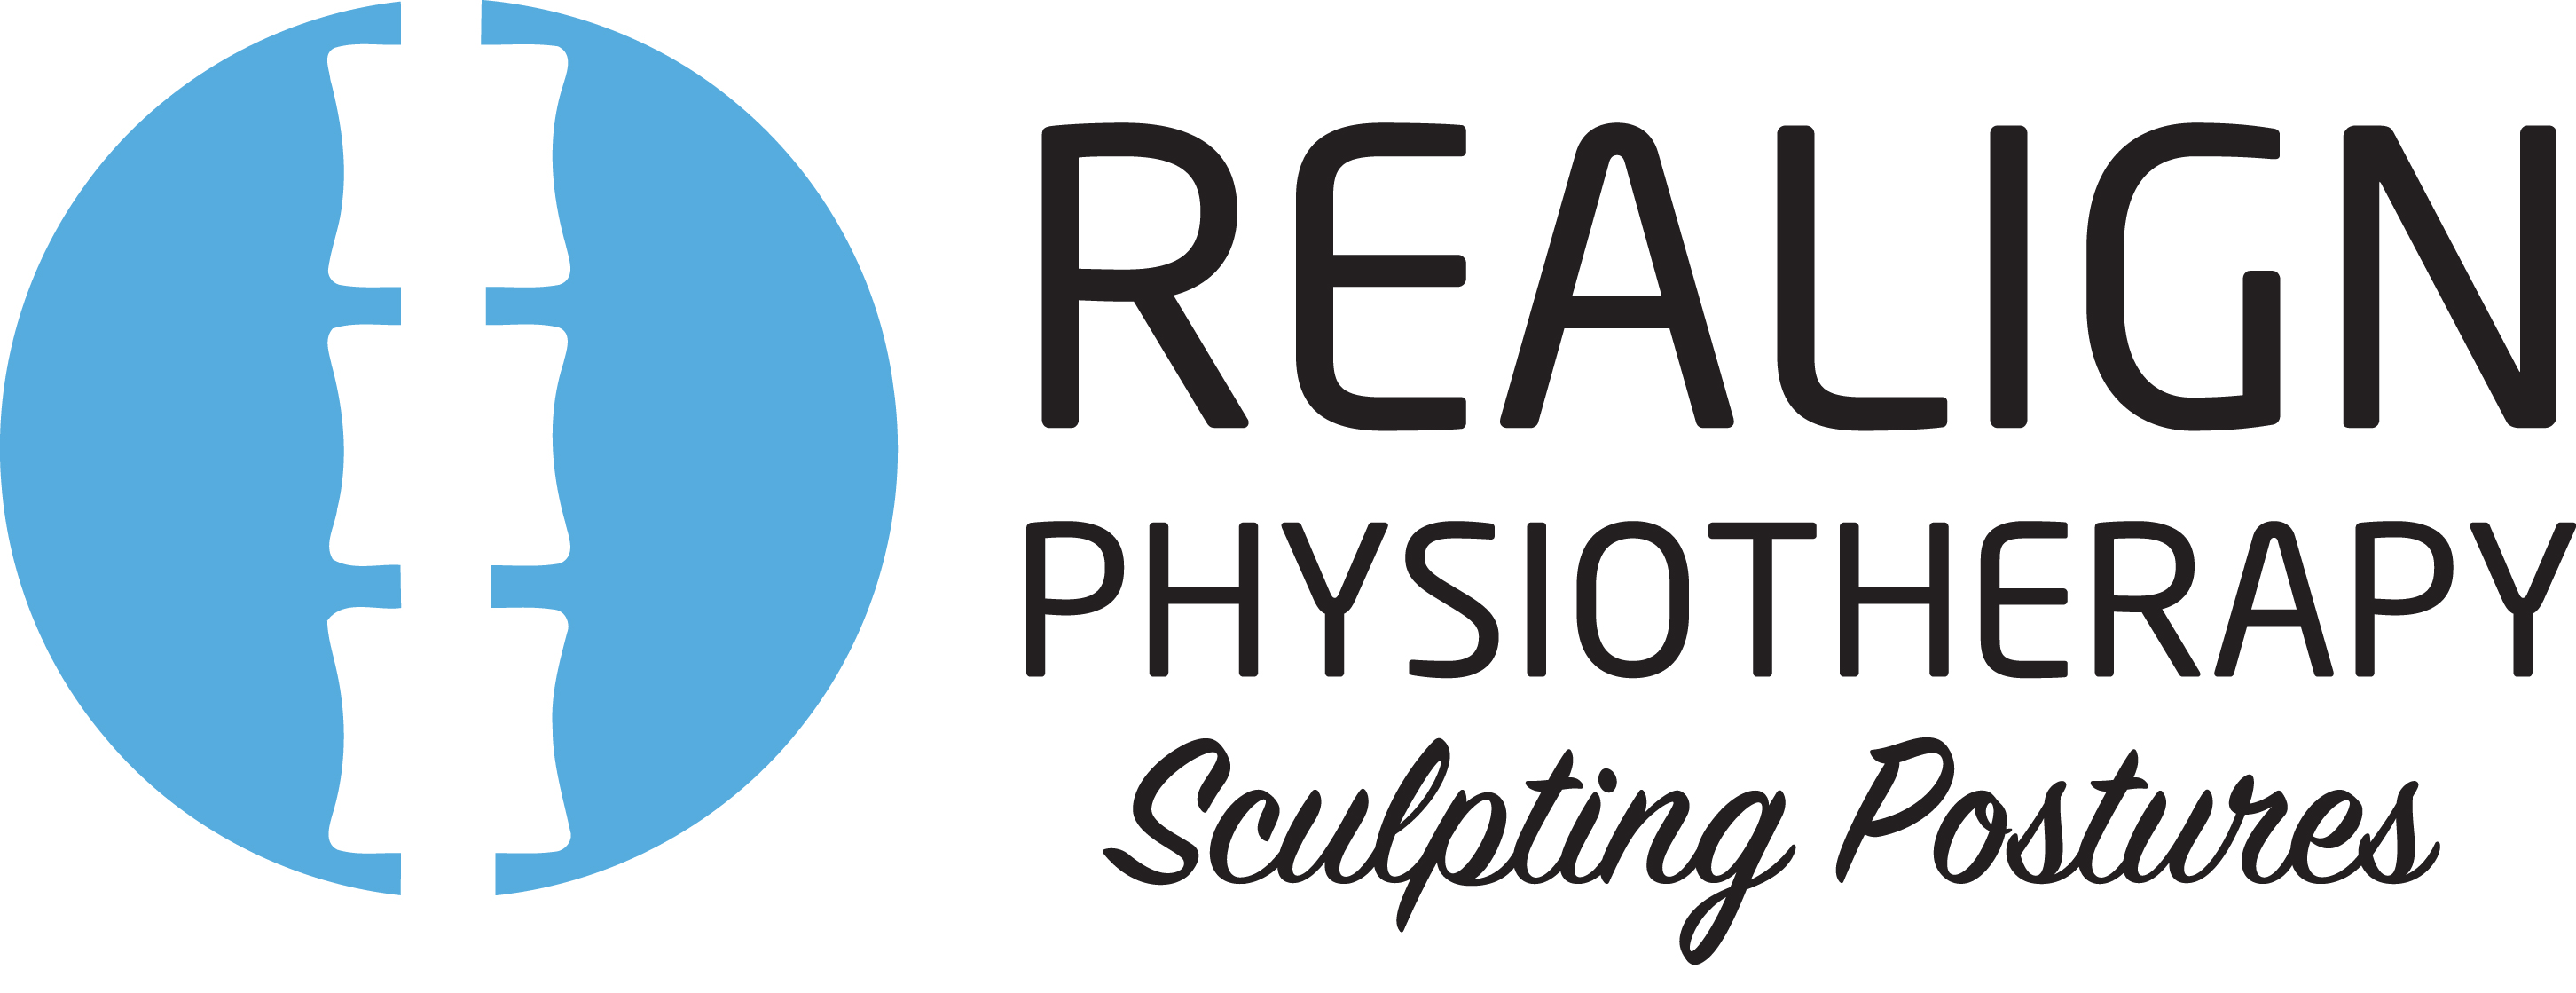 Realign Physiotherapy